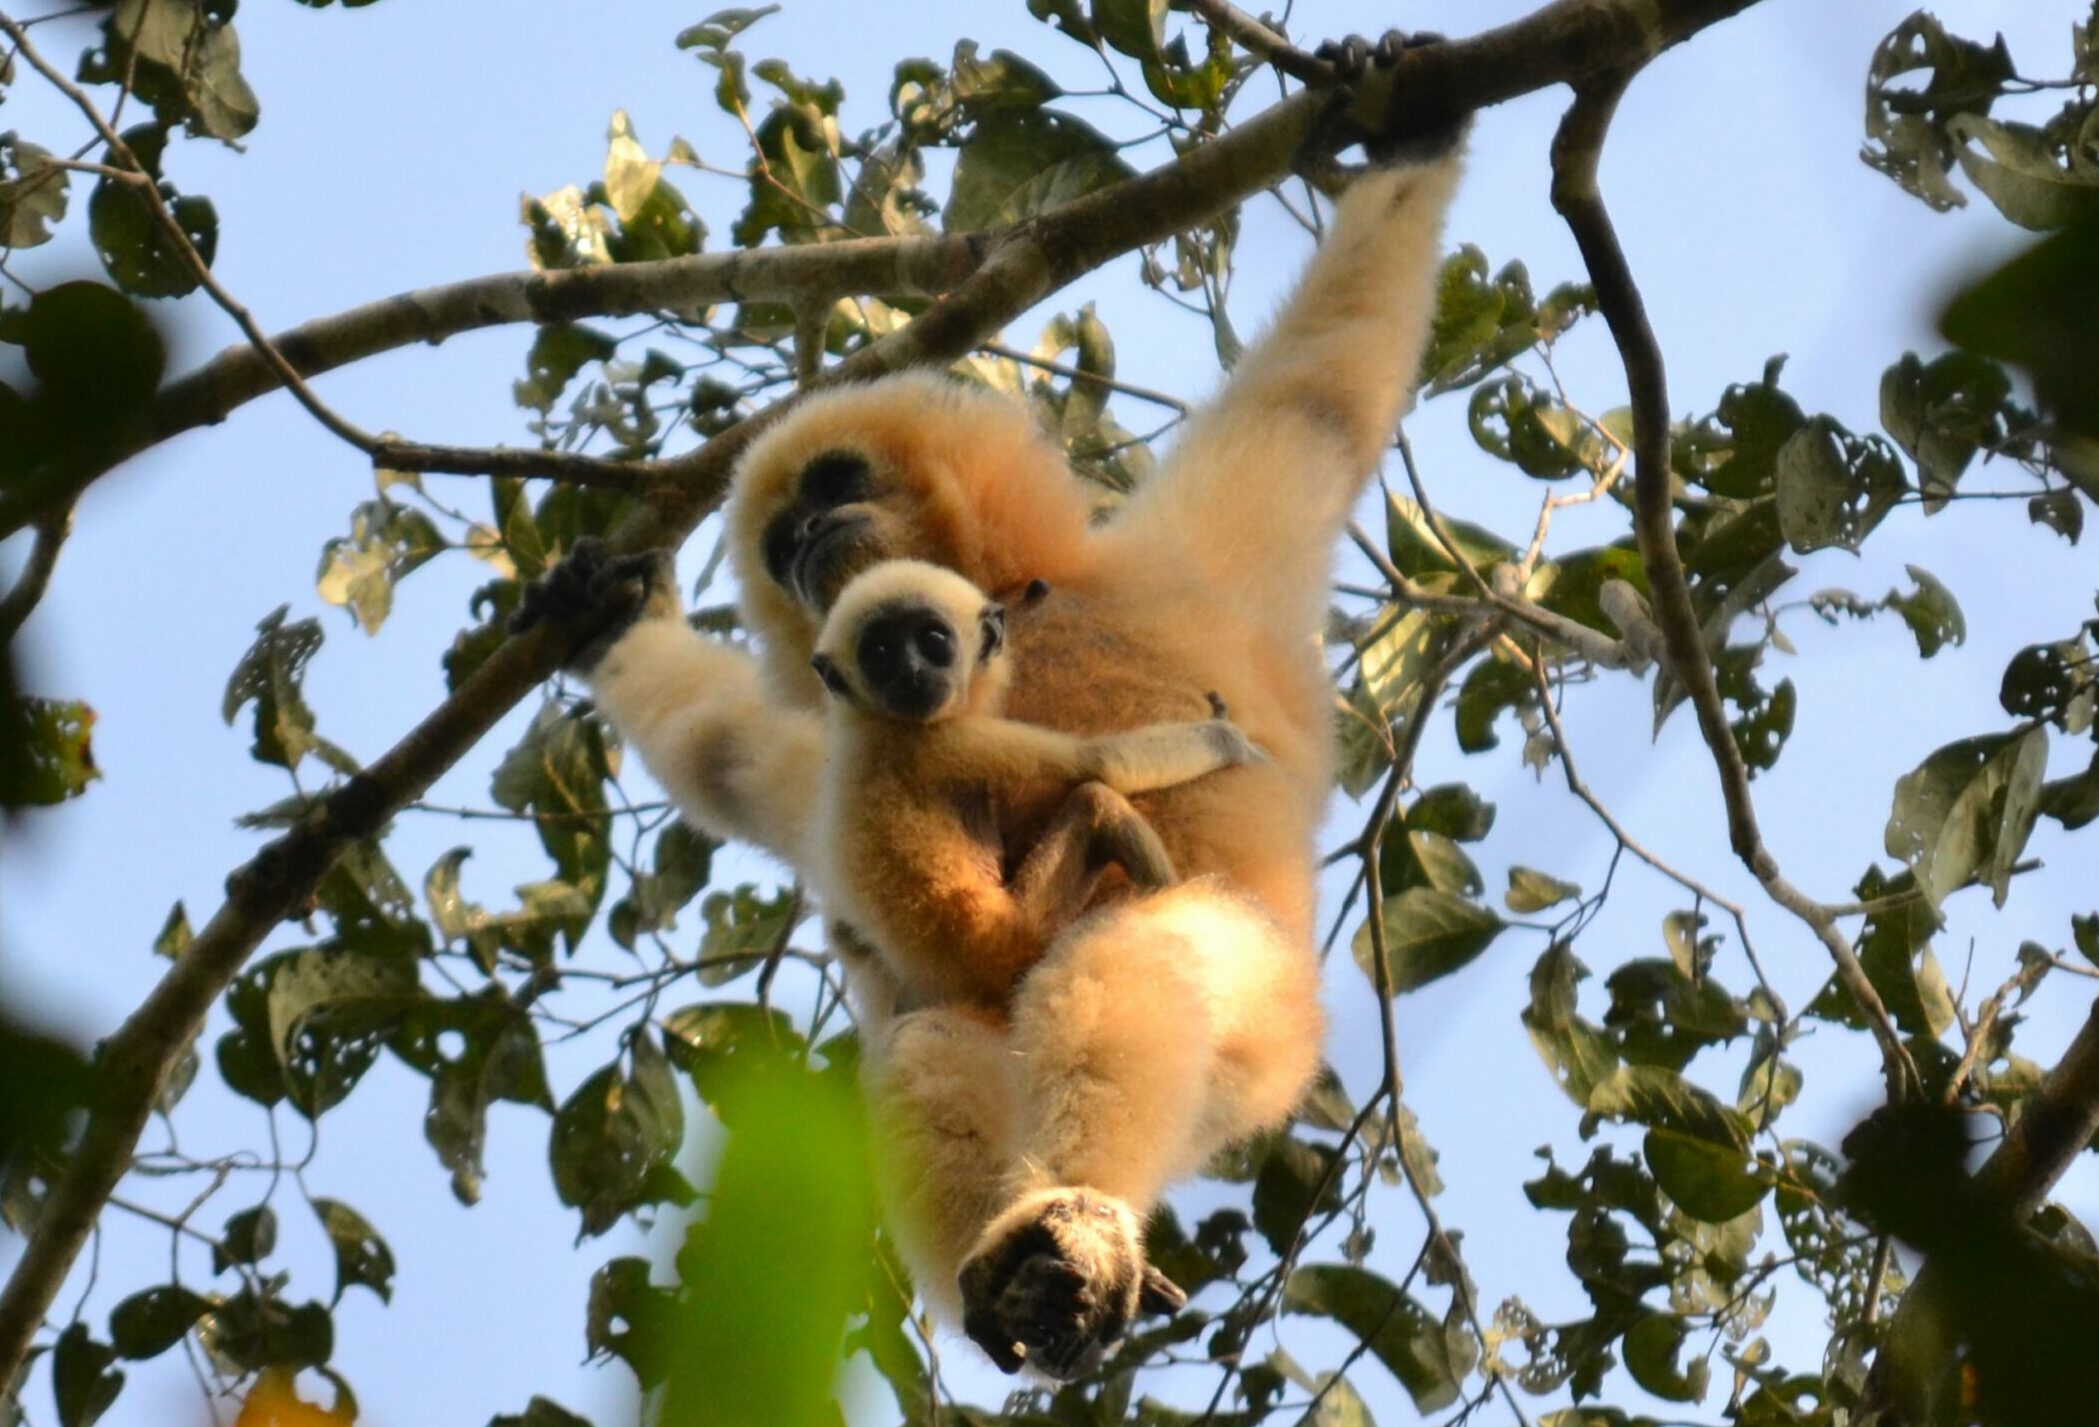 Female gibbon with her baby hanging from a tree in Cambodia